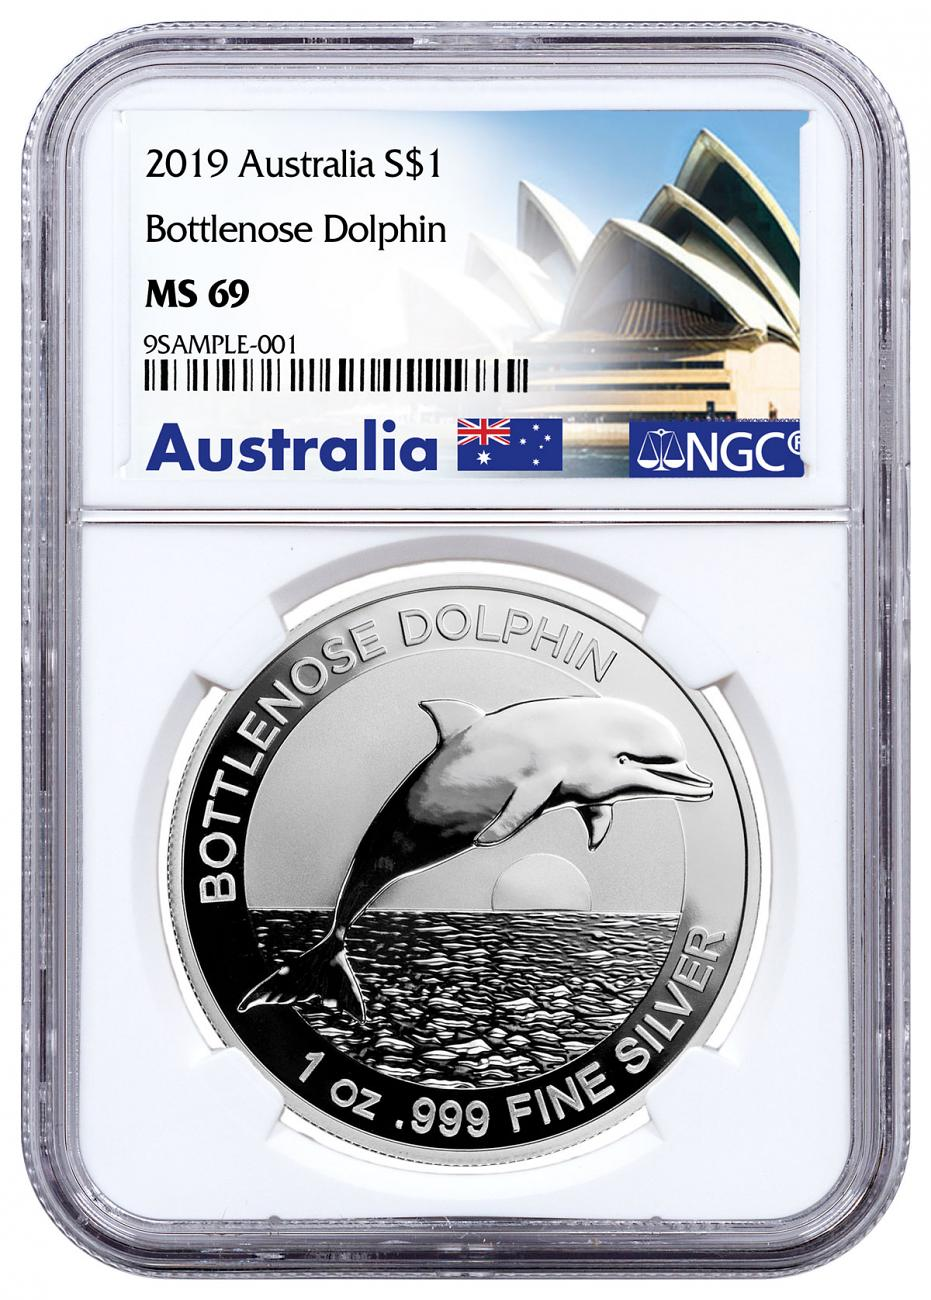 2019 Australia 1 oz Silver Dolphin $1 Coin NGC MS69 Exclusive Australia Label